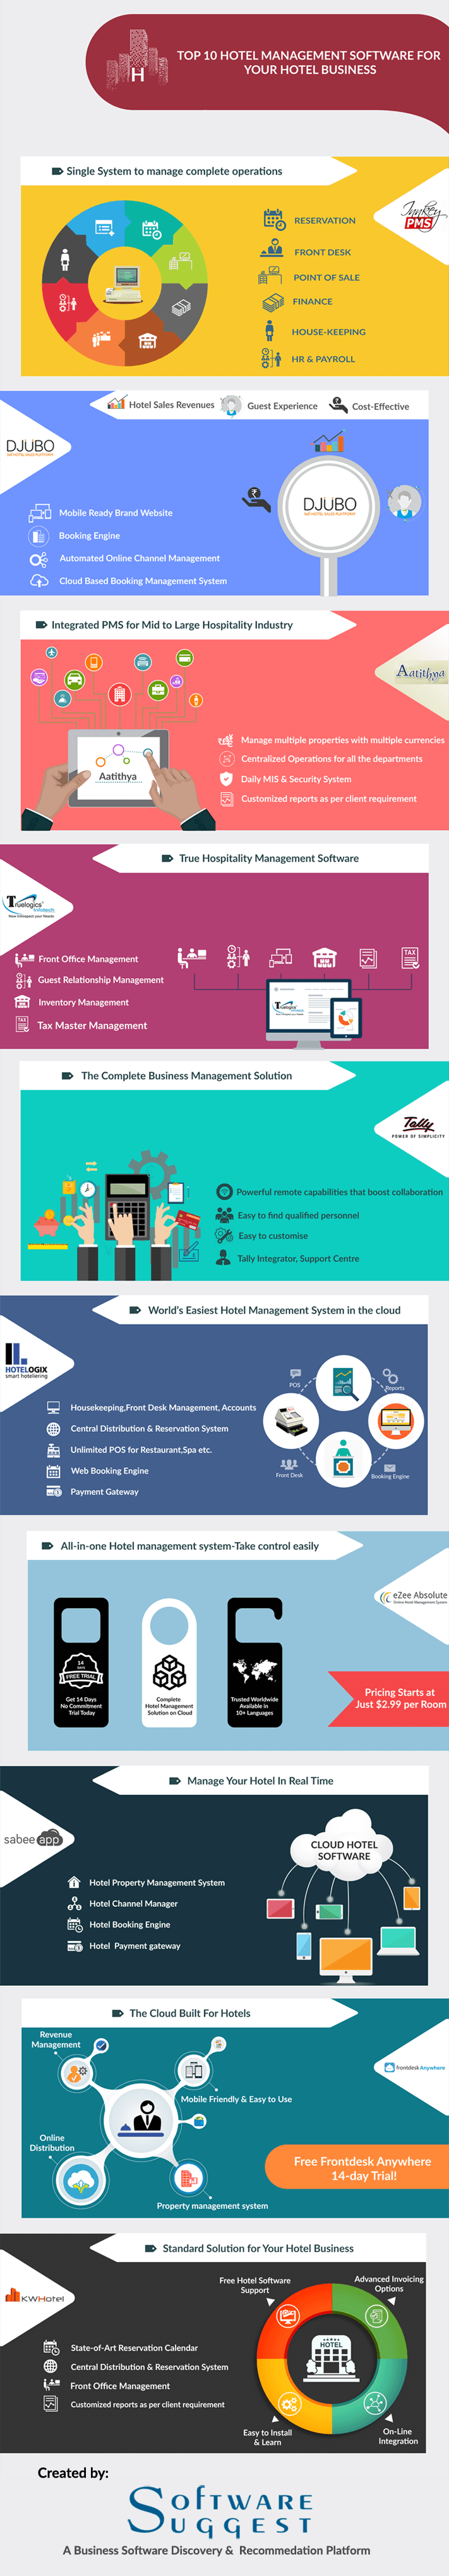 Hotel management software infographic